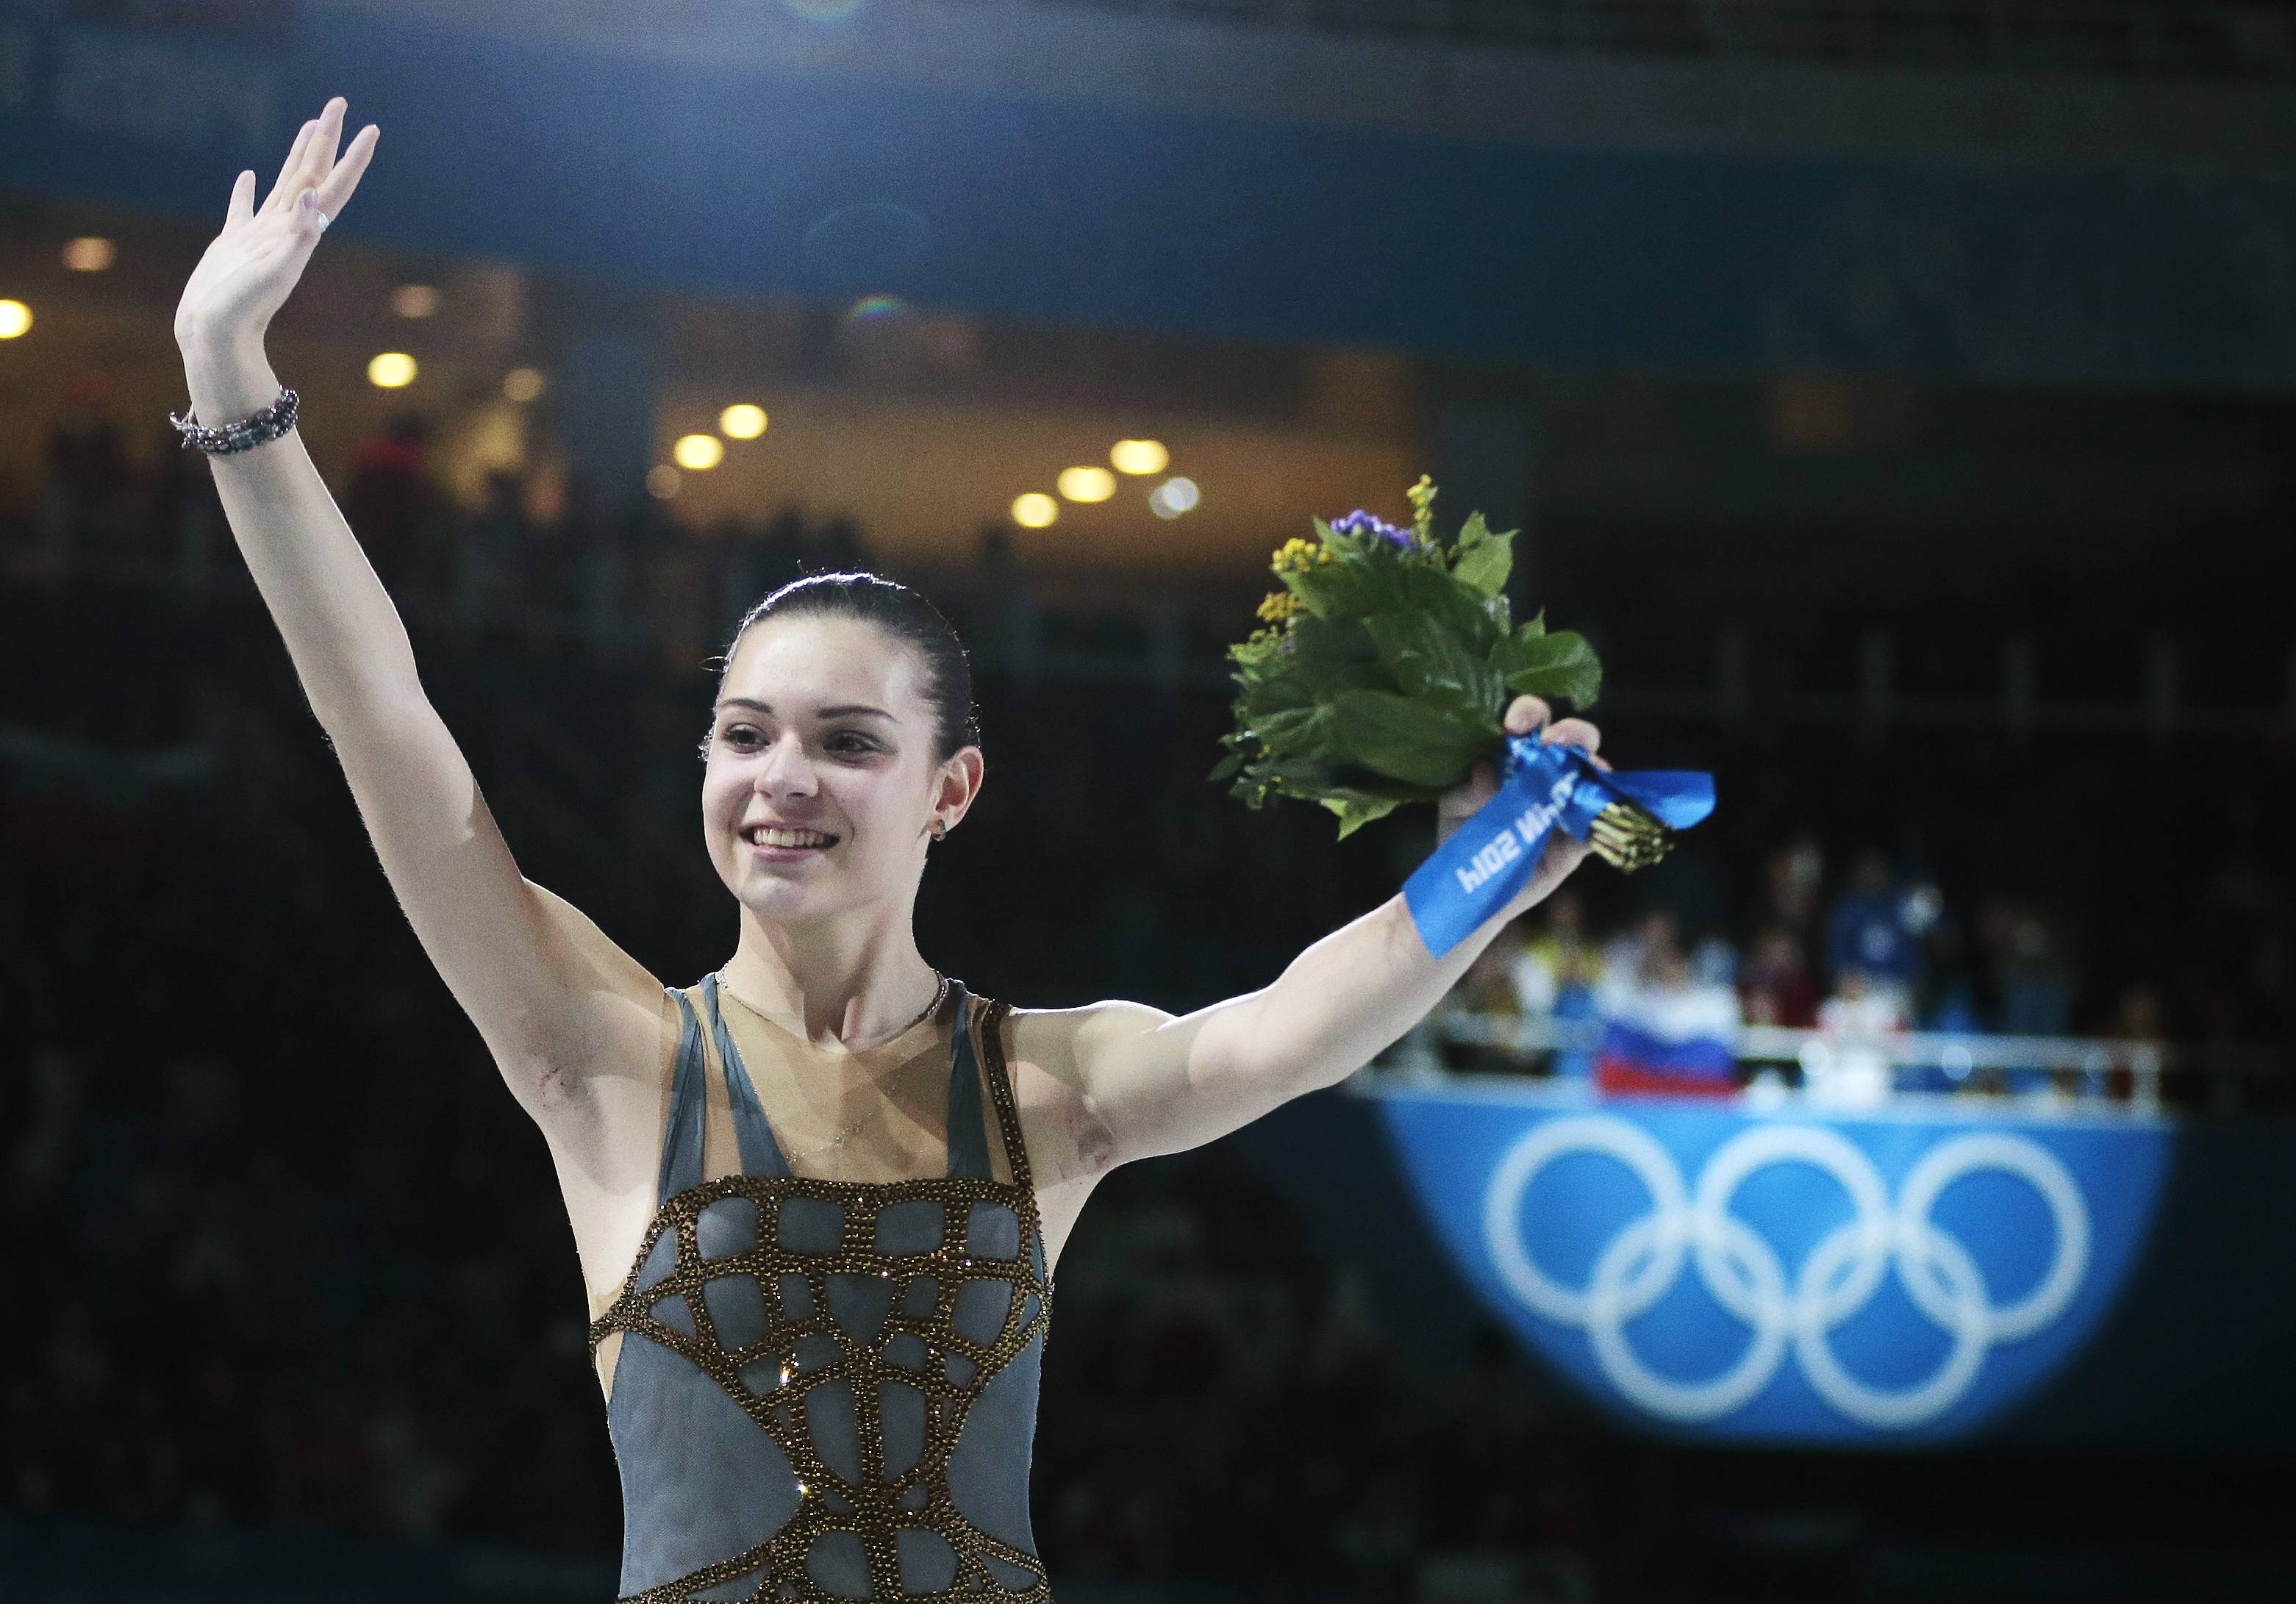 Adelina Sotnikova of Russia celebrates after placing first during the flower ceremony for the women's free skate figure skating final at the Iceberg Skating Palace during the 2014 Winter Olympics, Thursday, Feb. 20, 2014, in Sochi, Russia. Sotnikova placed first, followed by Kim and Kostner.